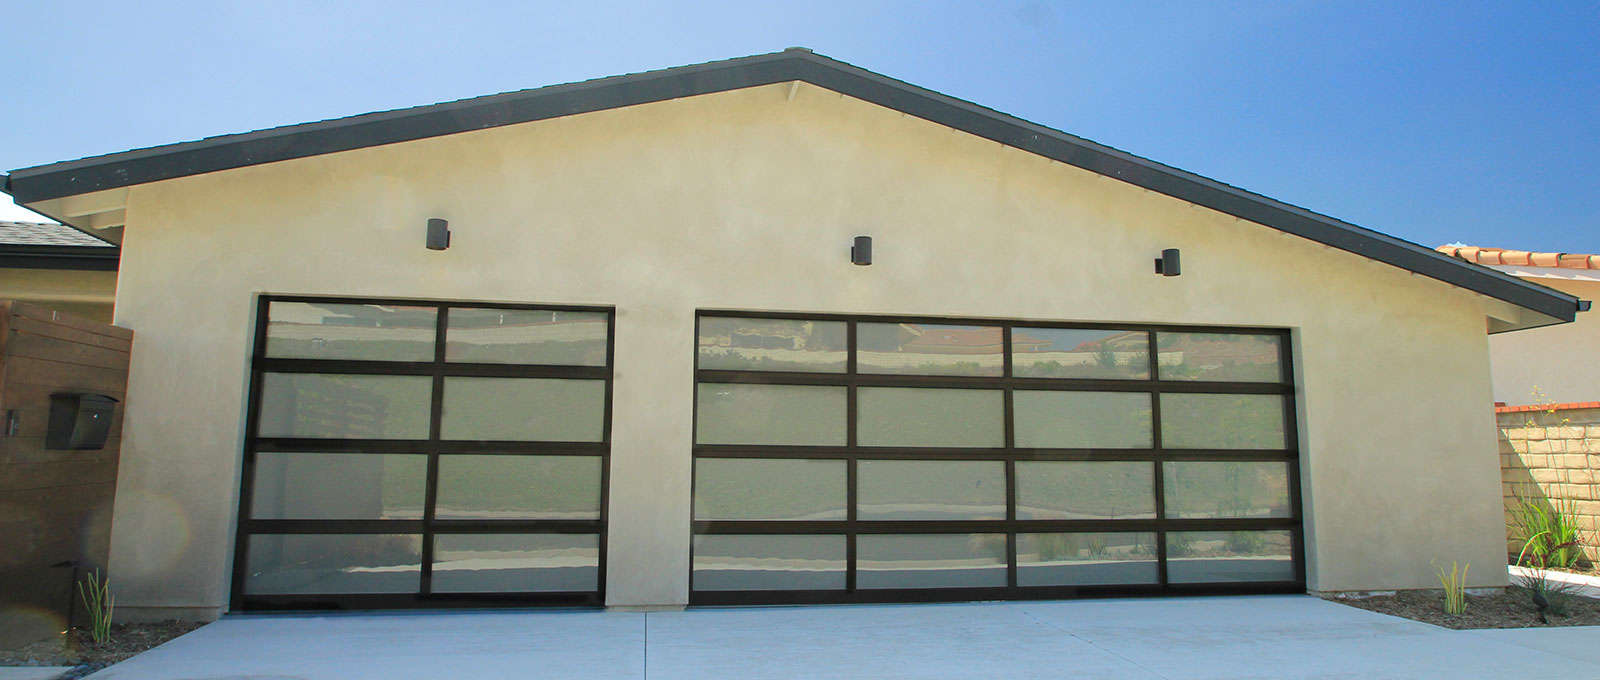 a watch garage aluminum with by glass etogaragedoors door clear passing